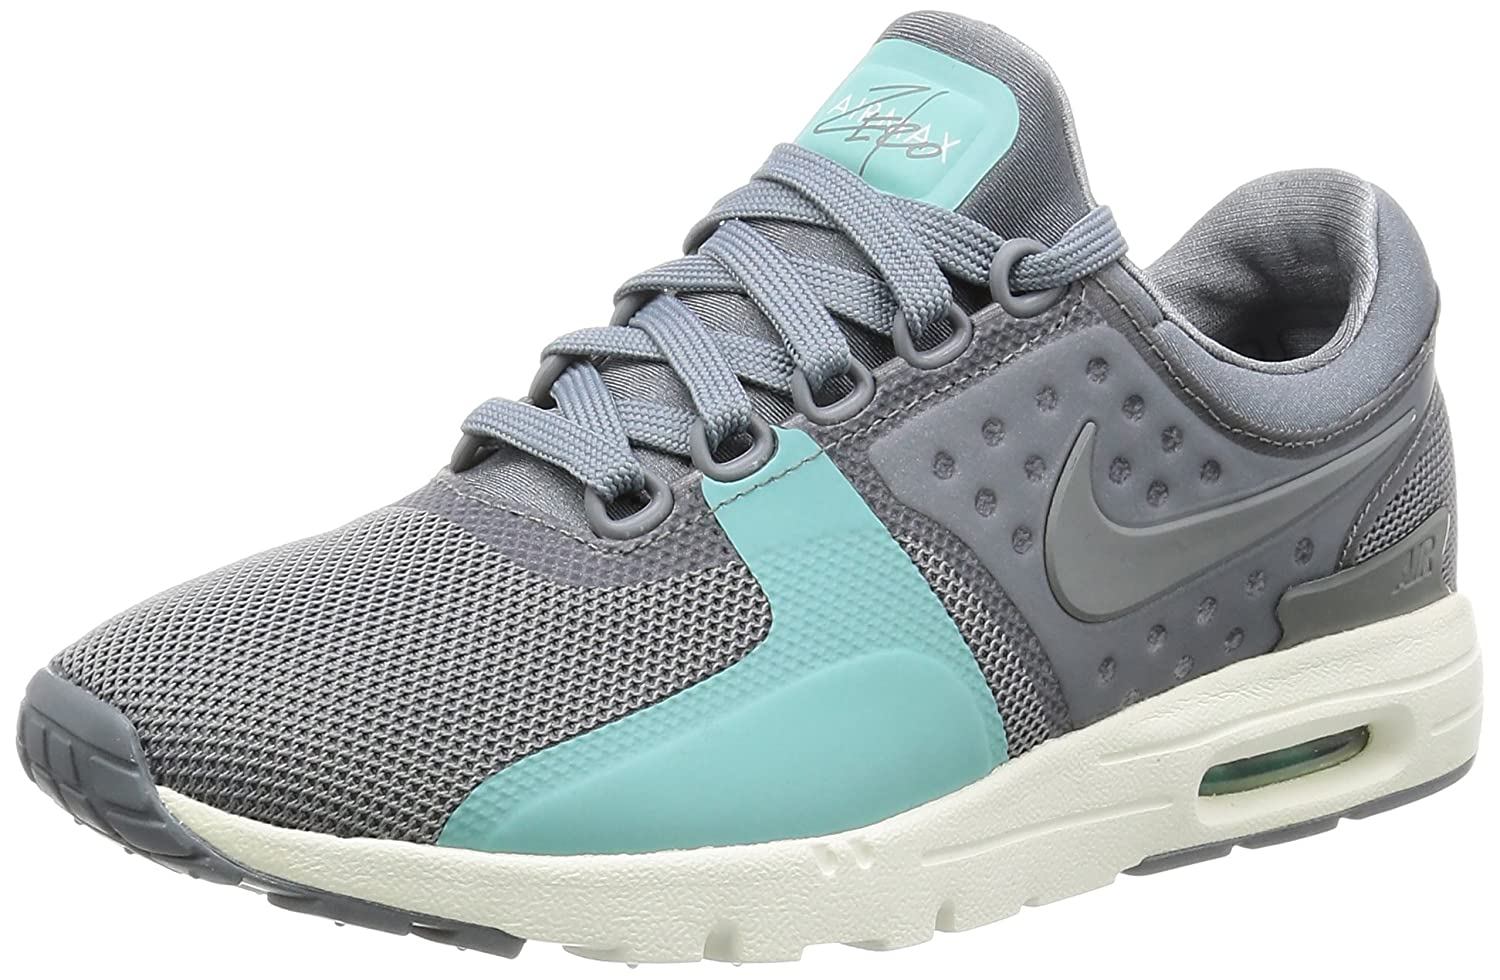 NIKE Women's Air Max Zero Running Shoe B01M7PENTT 7 B(M) US|Cool Grey/Sail/Washed Teal